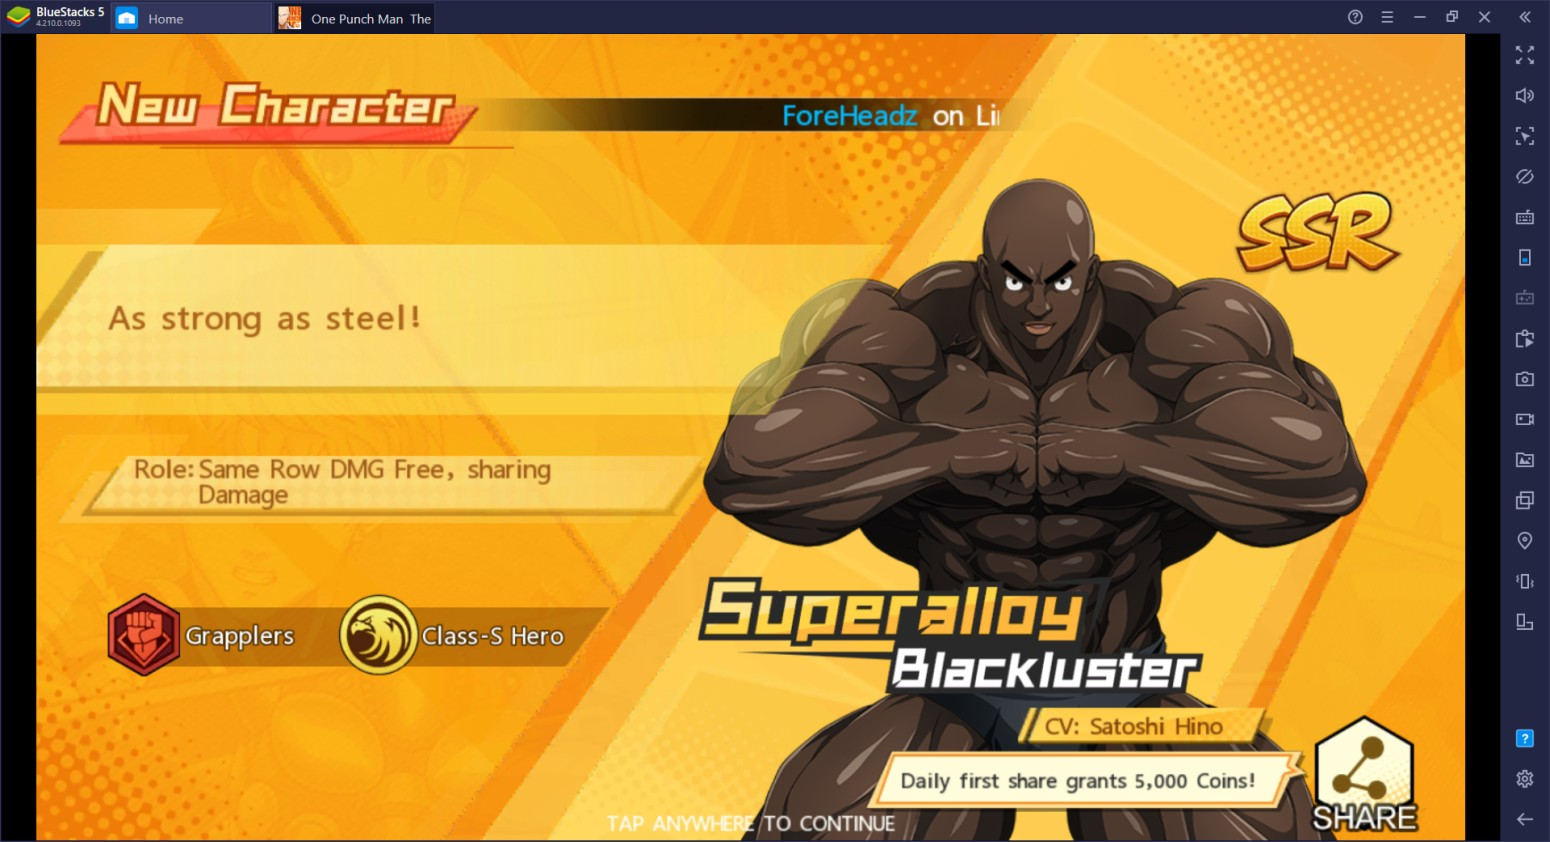 ONE PUNCH MAN: The Strongest – Reroll for Your Favorite Characters With Multi-Instance